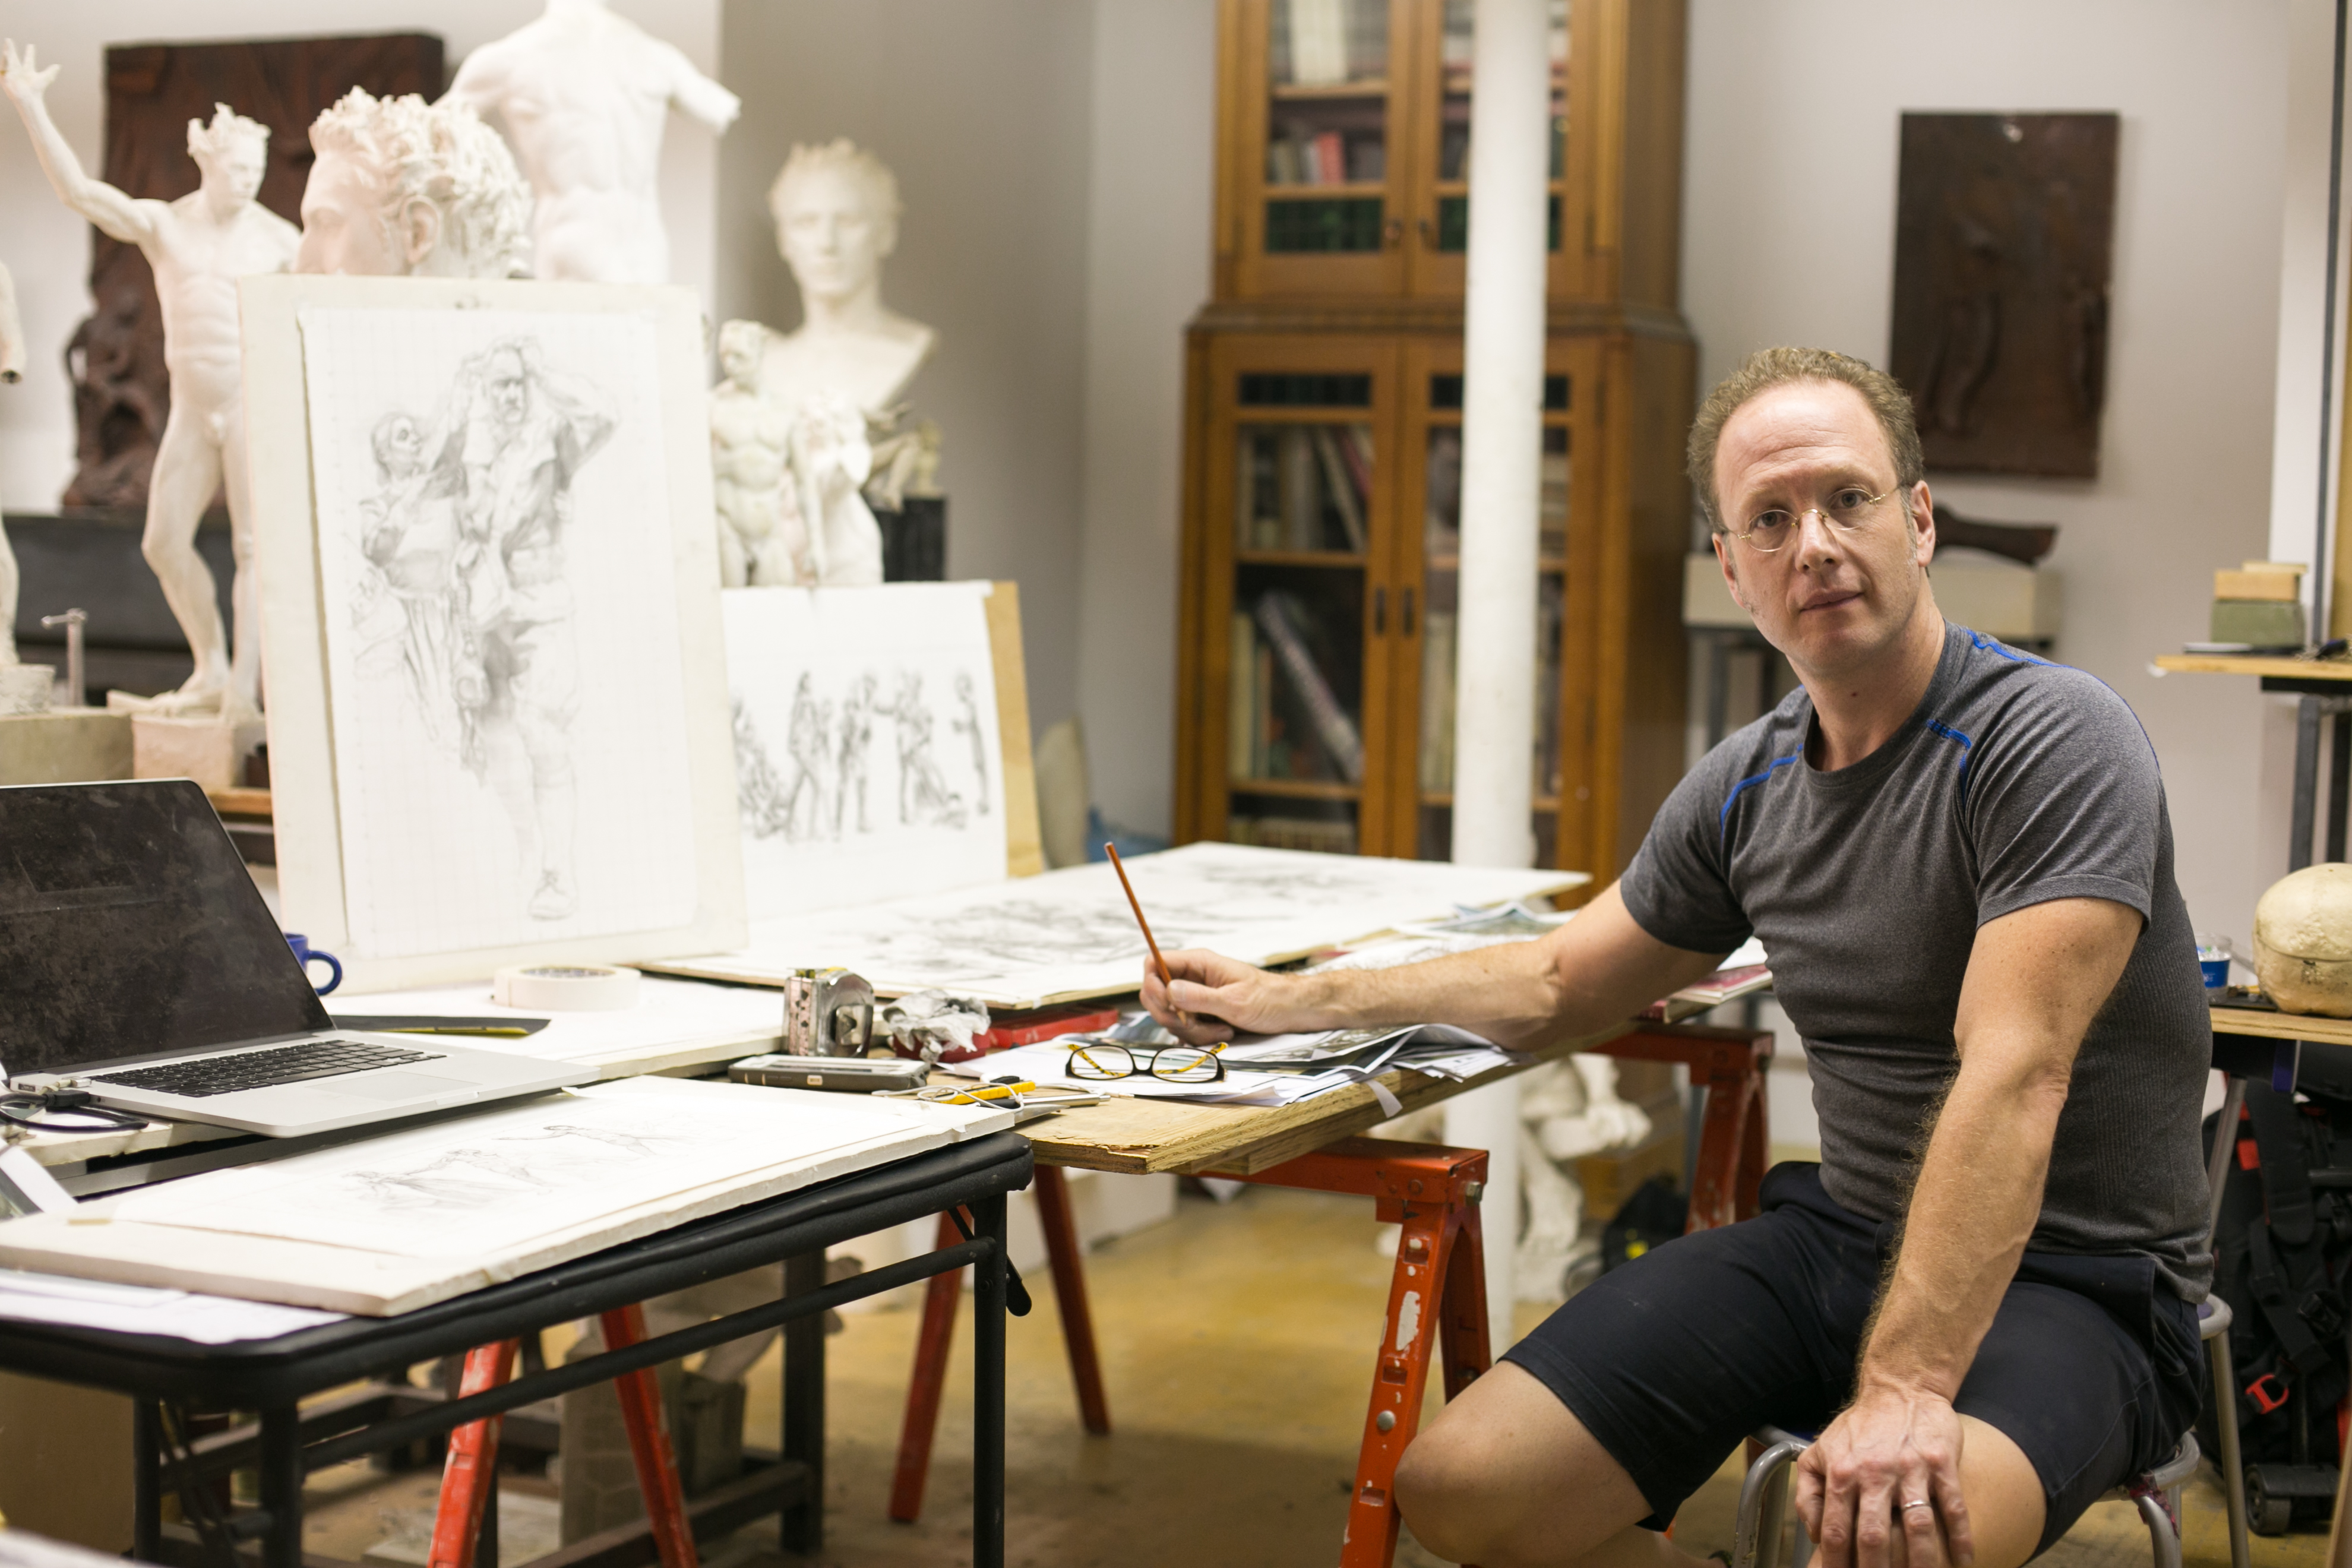 A New Chapter for Artists Bauman and Hernes